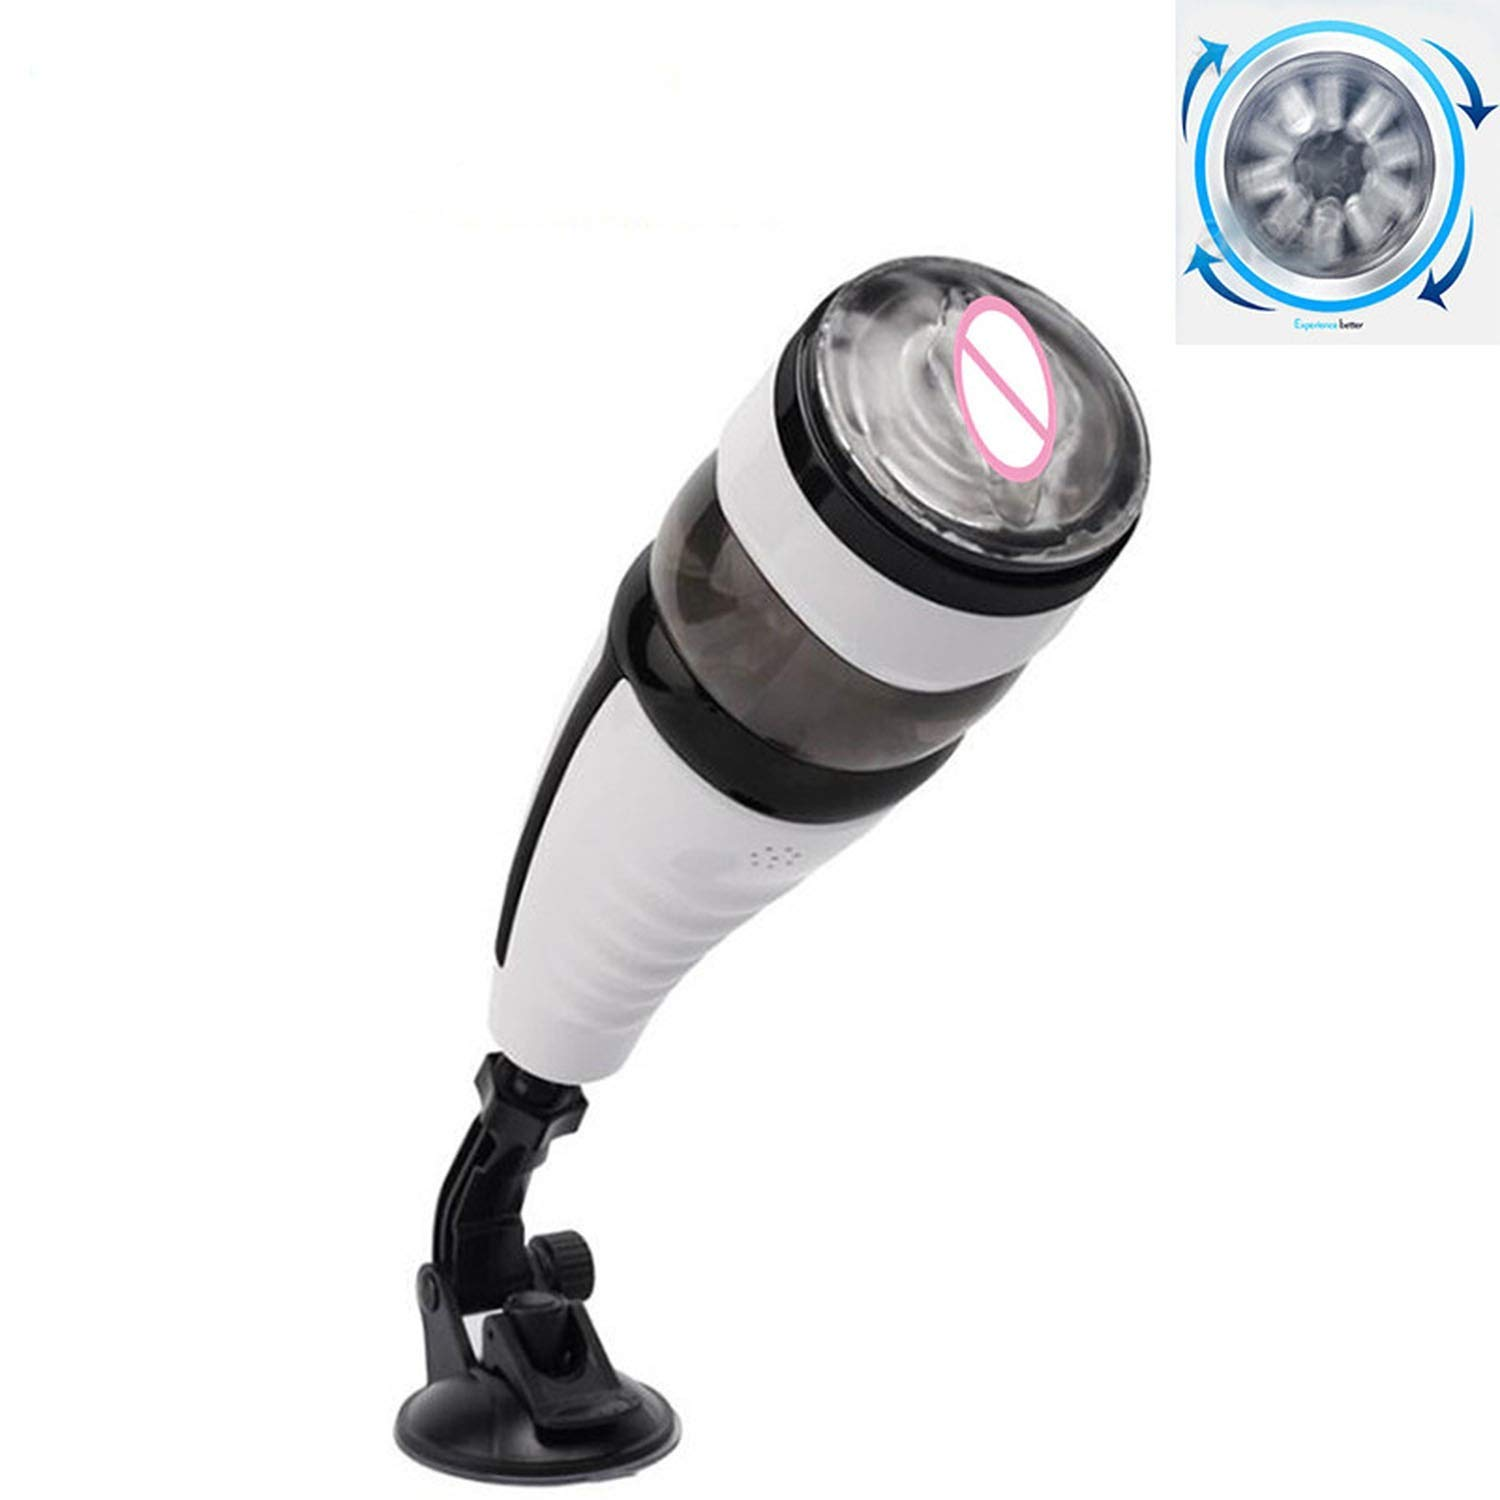 USEXMTY S-Tshirt New Automatic Telescopic Rotating Hands Free Masturbator Sex Machine for Men Voice Male Masturbator Electric Pussy Toys,Rebox Packing Effectively by USEXMTY S-Tshirt (Image #1)